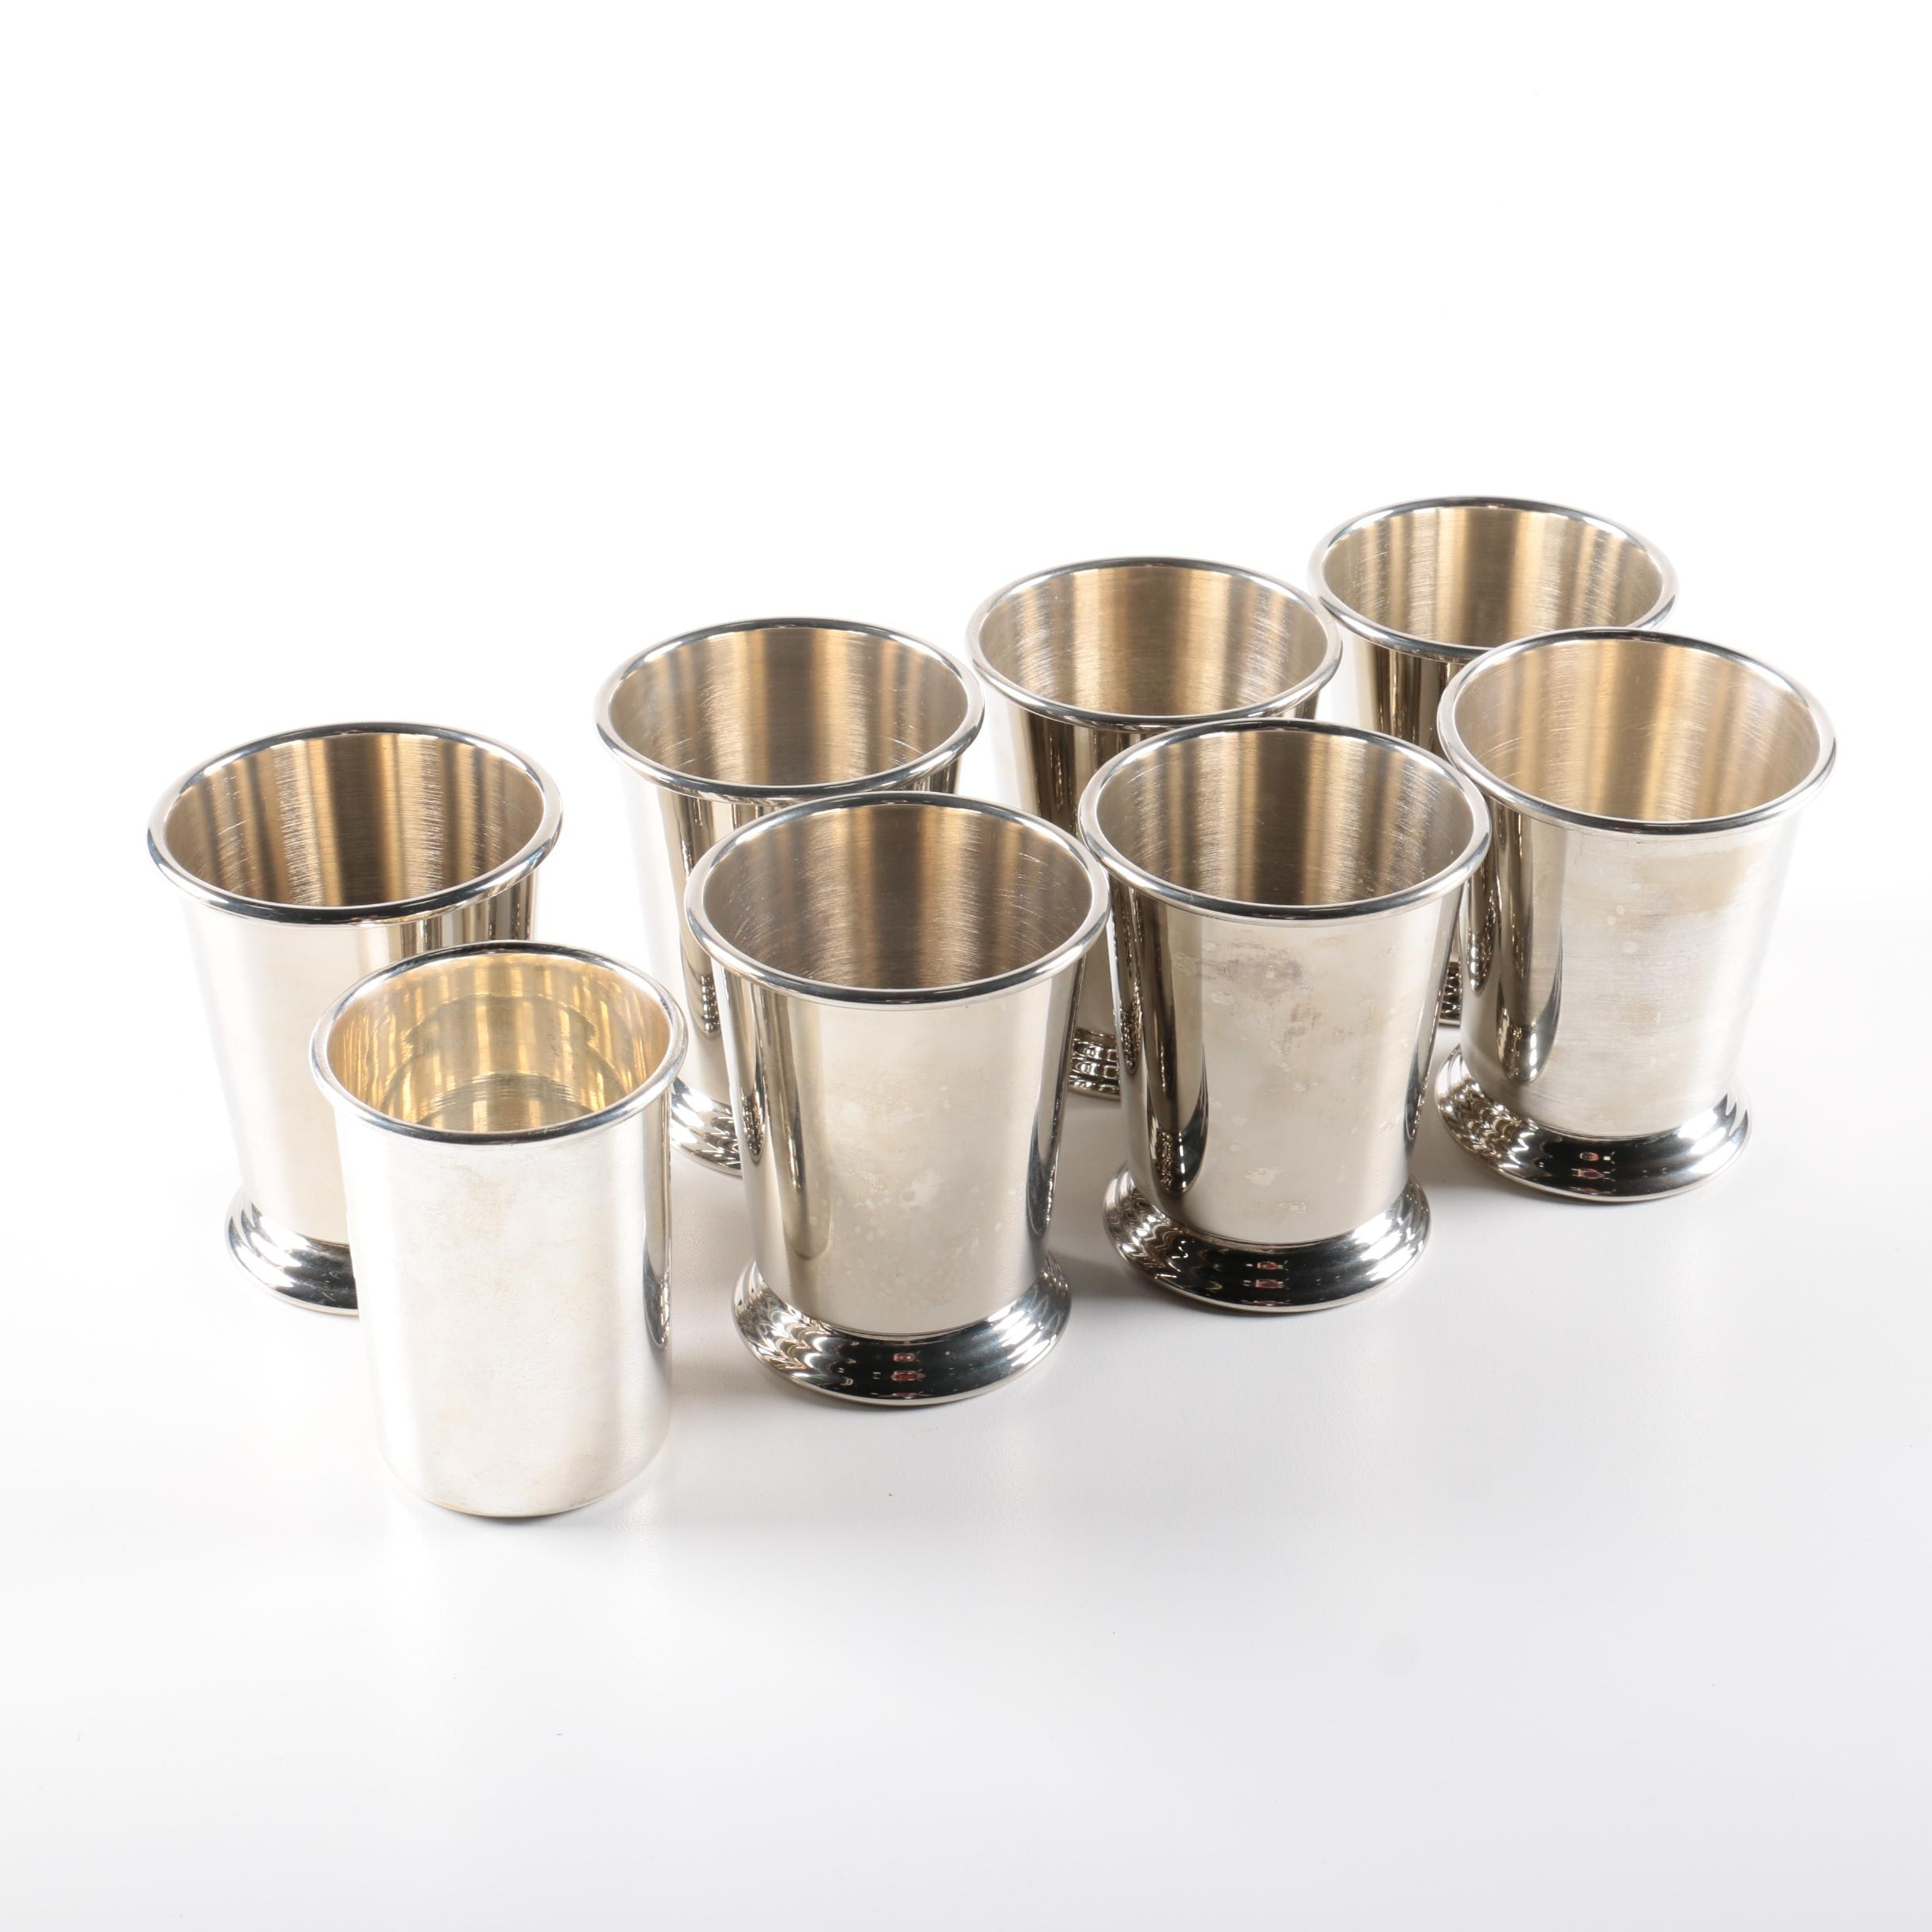 Set of Gorham Silver Plate Mint Julep Cups